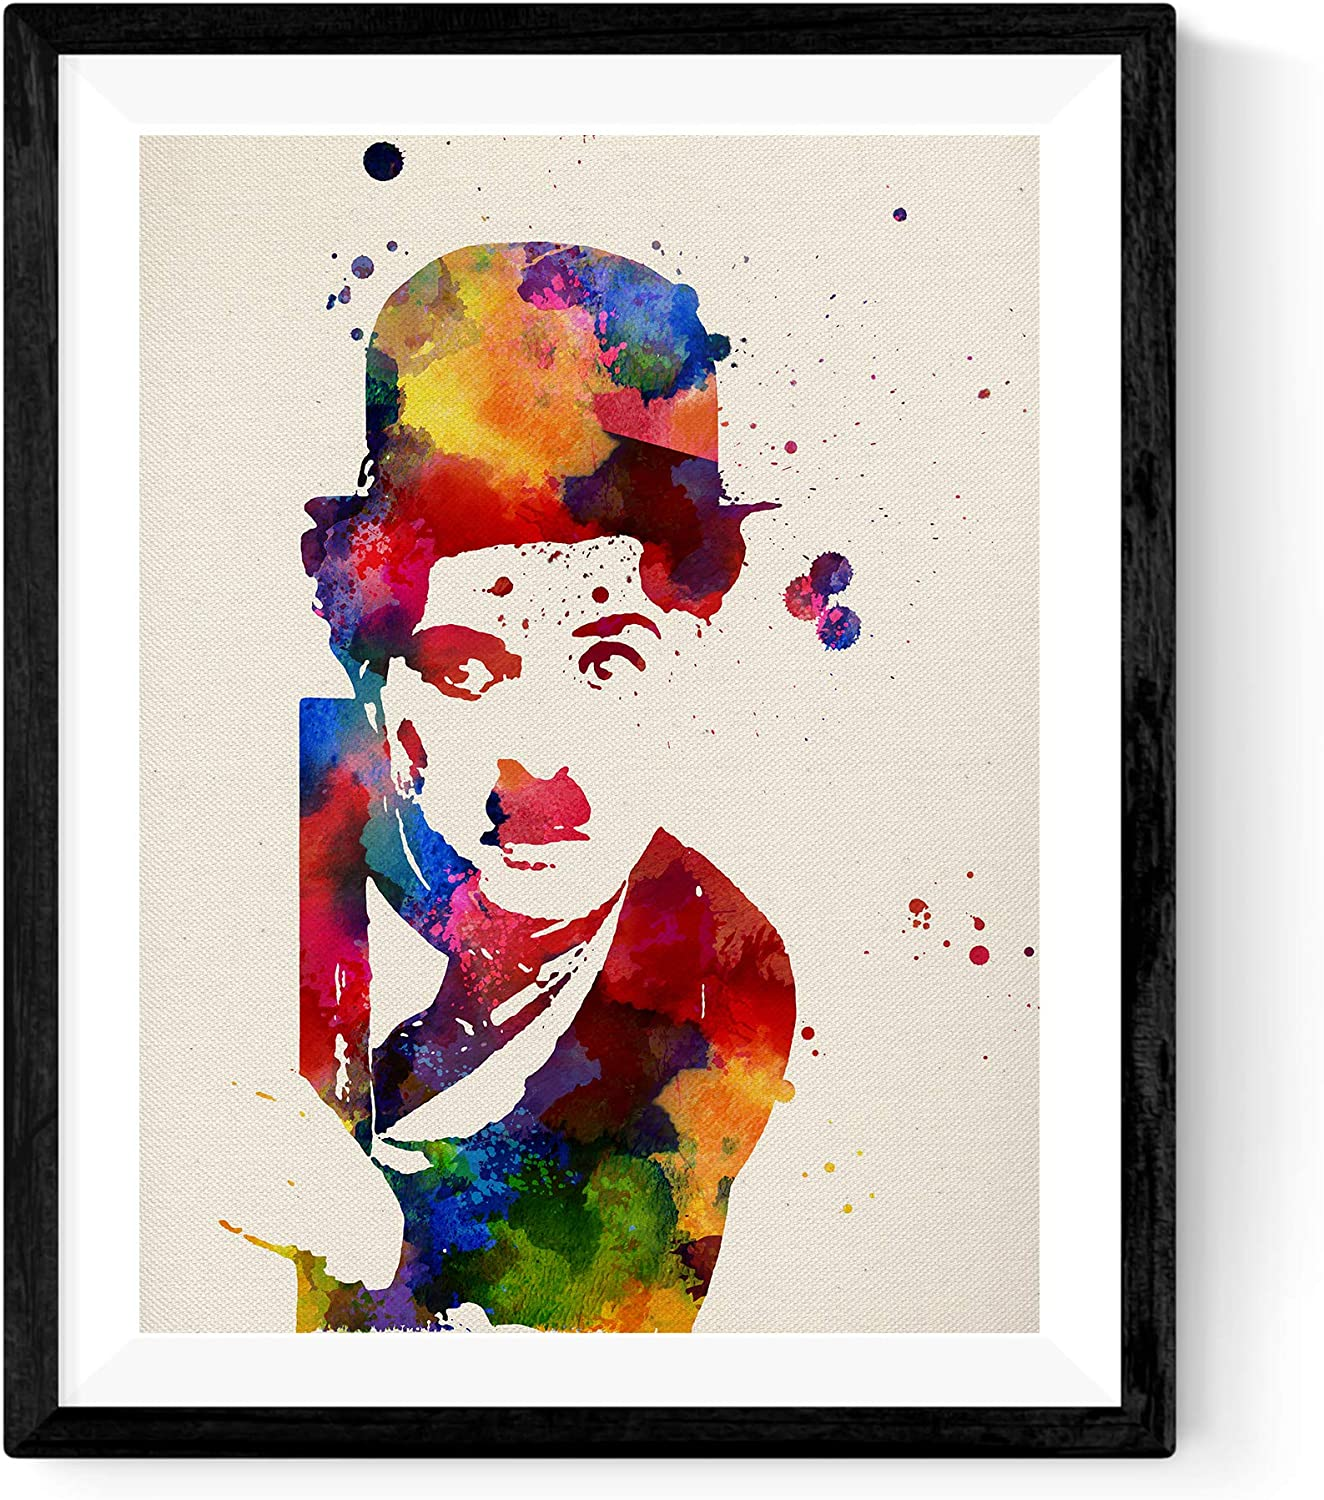 Nacnic Prints Charlie Chaplin Famous Person - Set of 1 - Unframed 11x17 inch Size - 250g Paper - Beautiful Poster Painting for Home Office Living Room